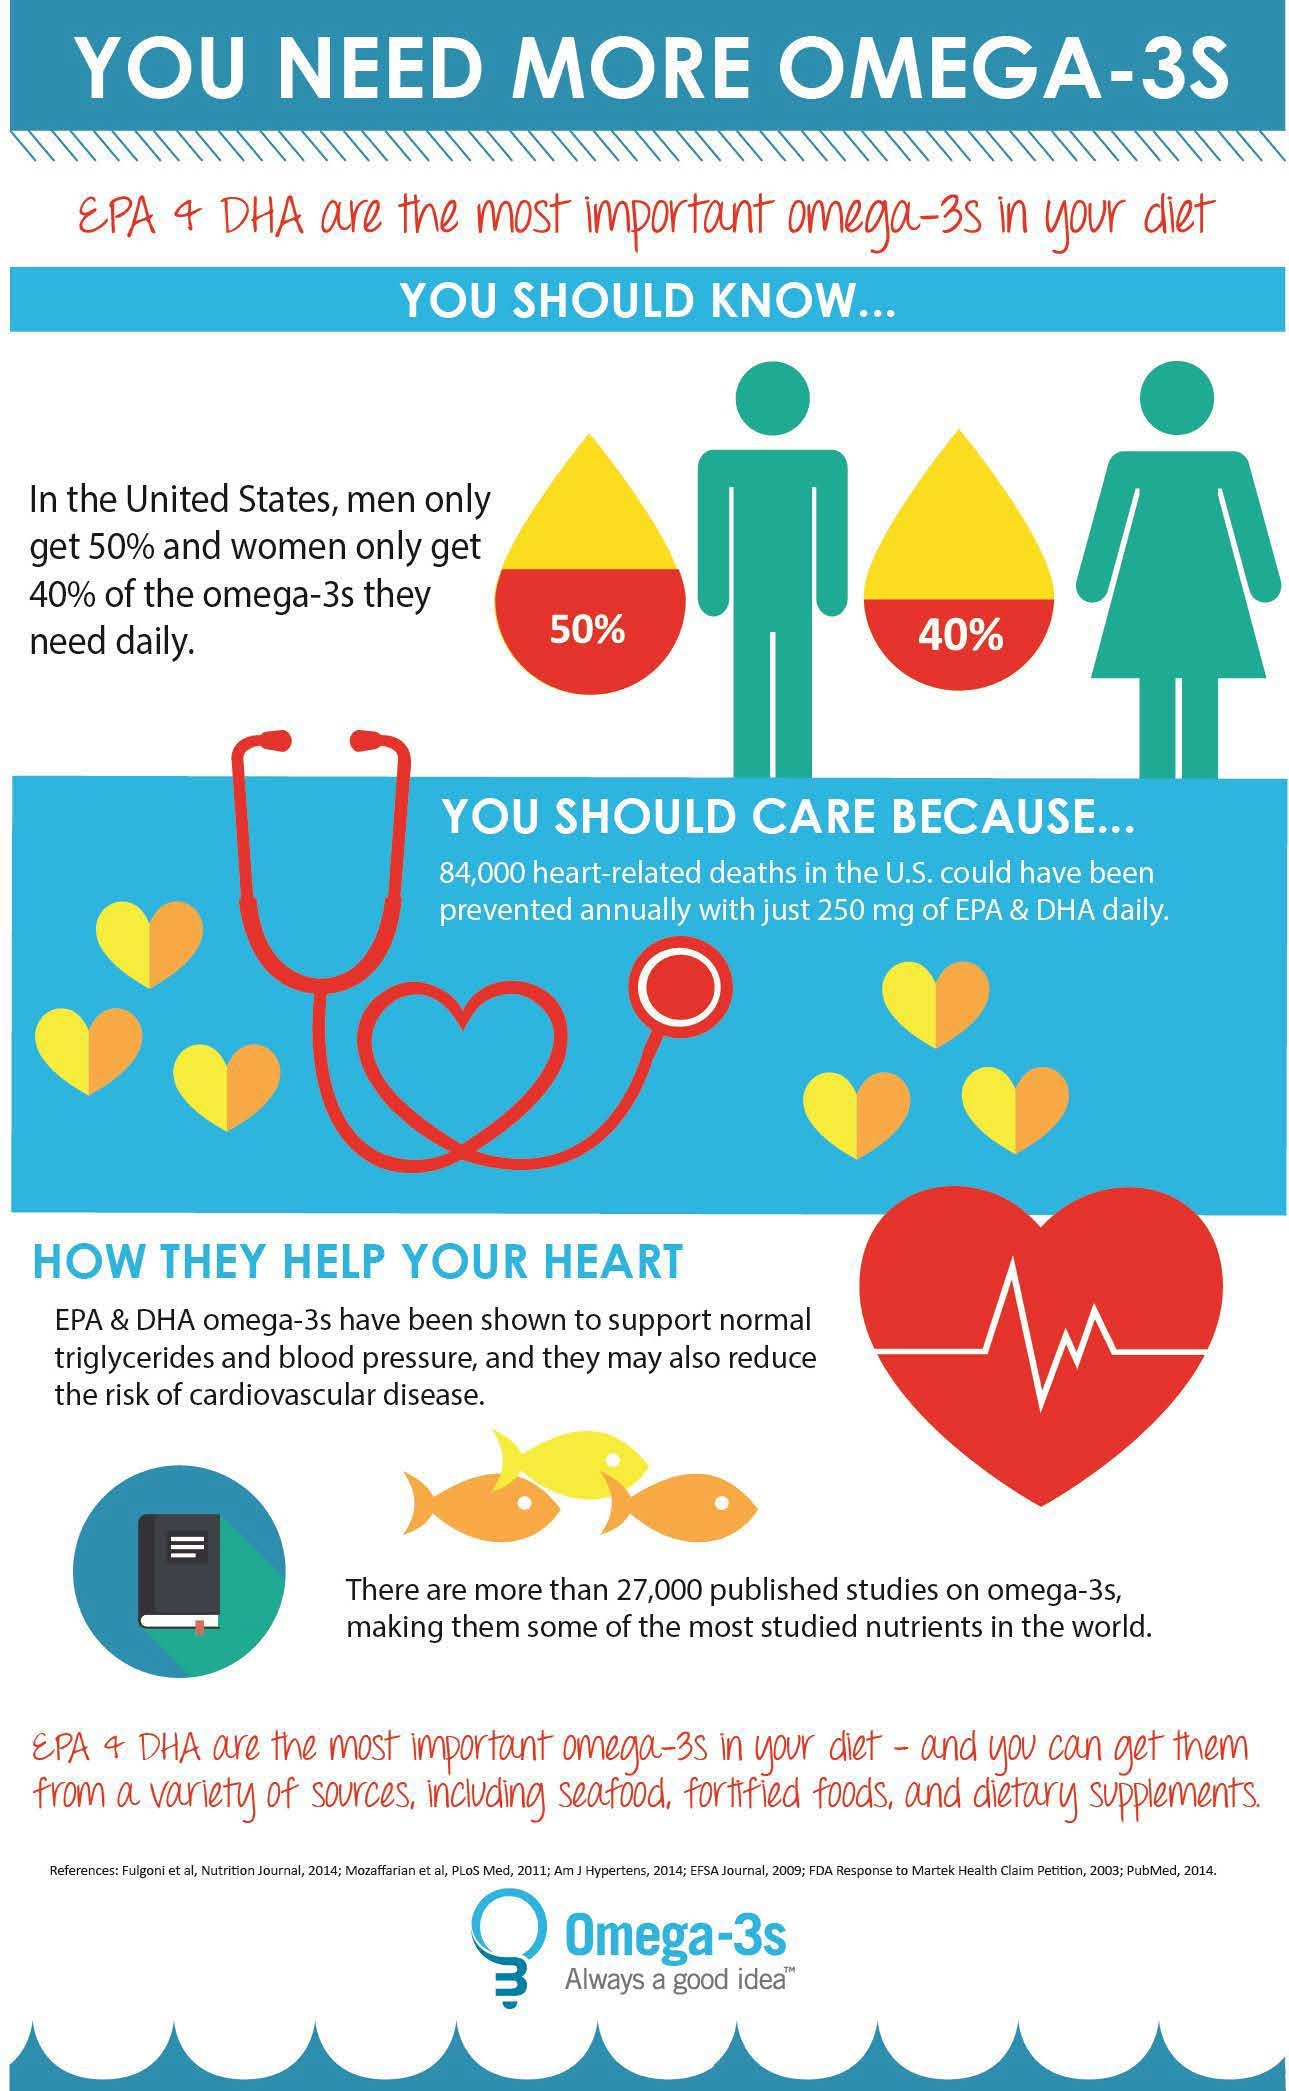 Source http://newhope.com/news-analysis/share-educational-omega-3-infographic